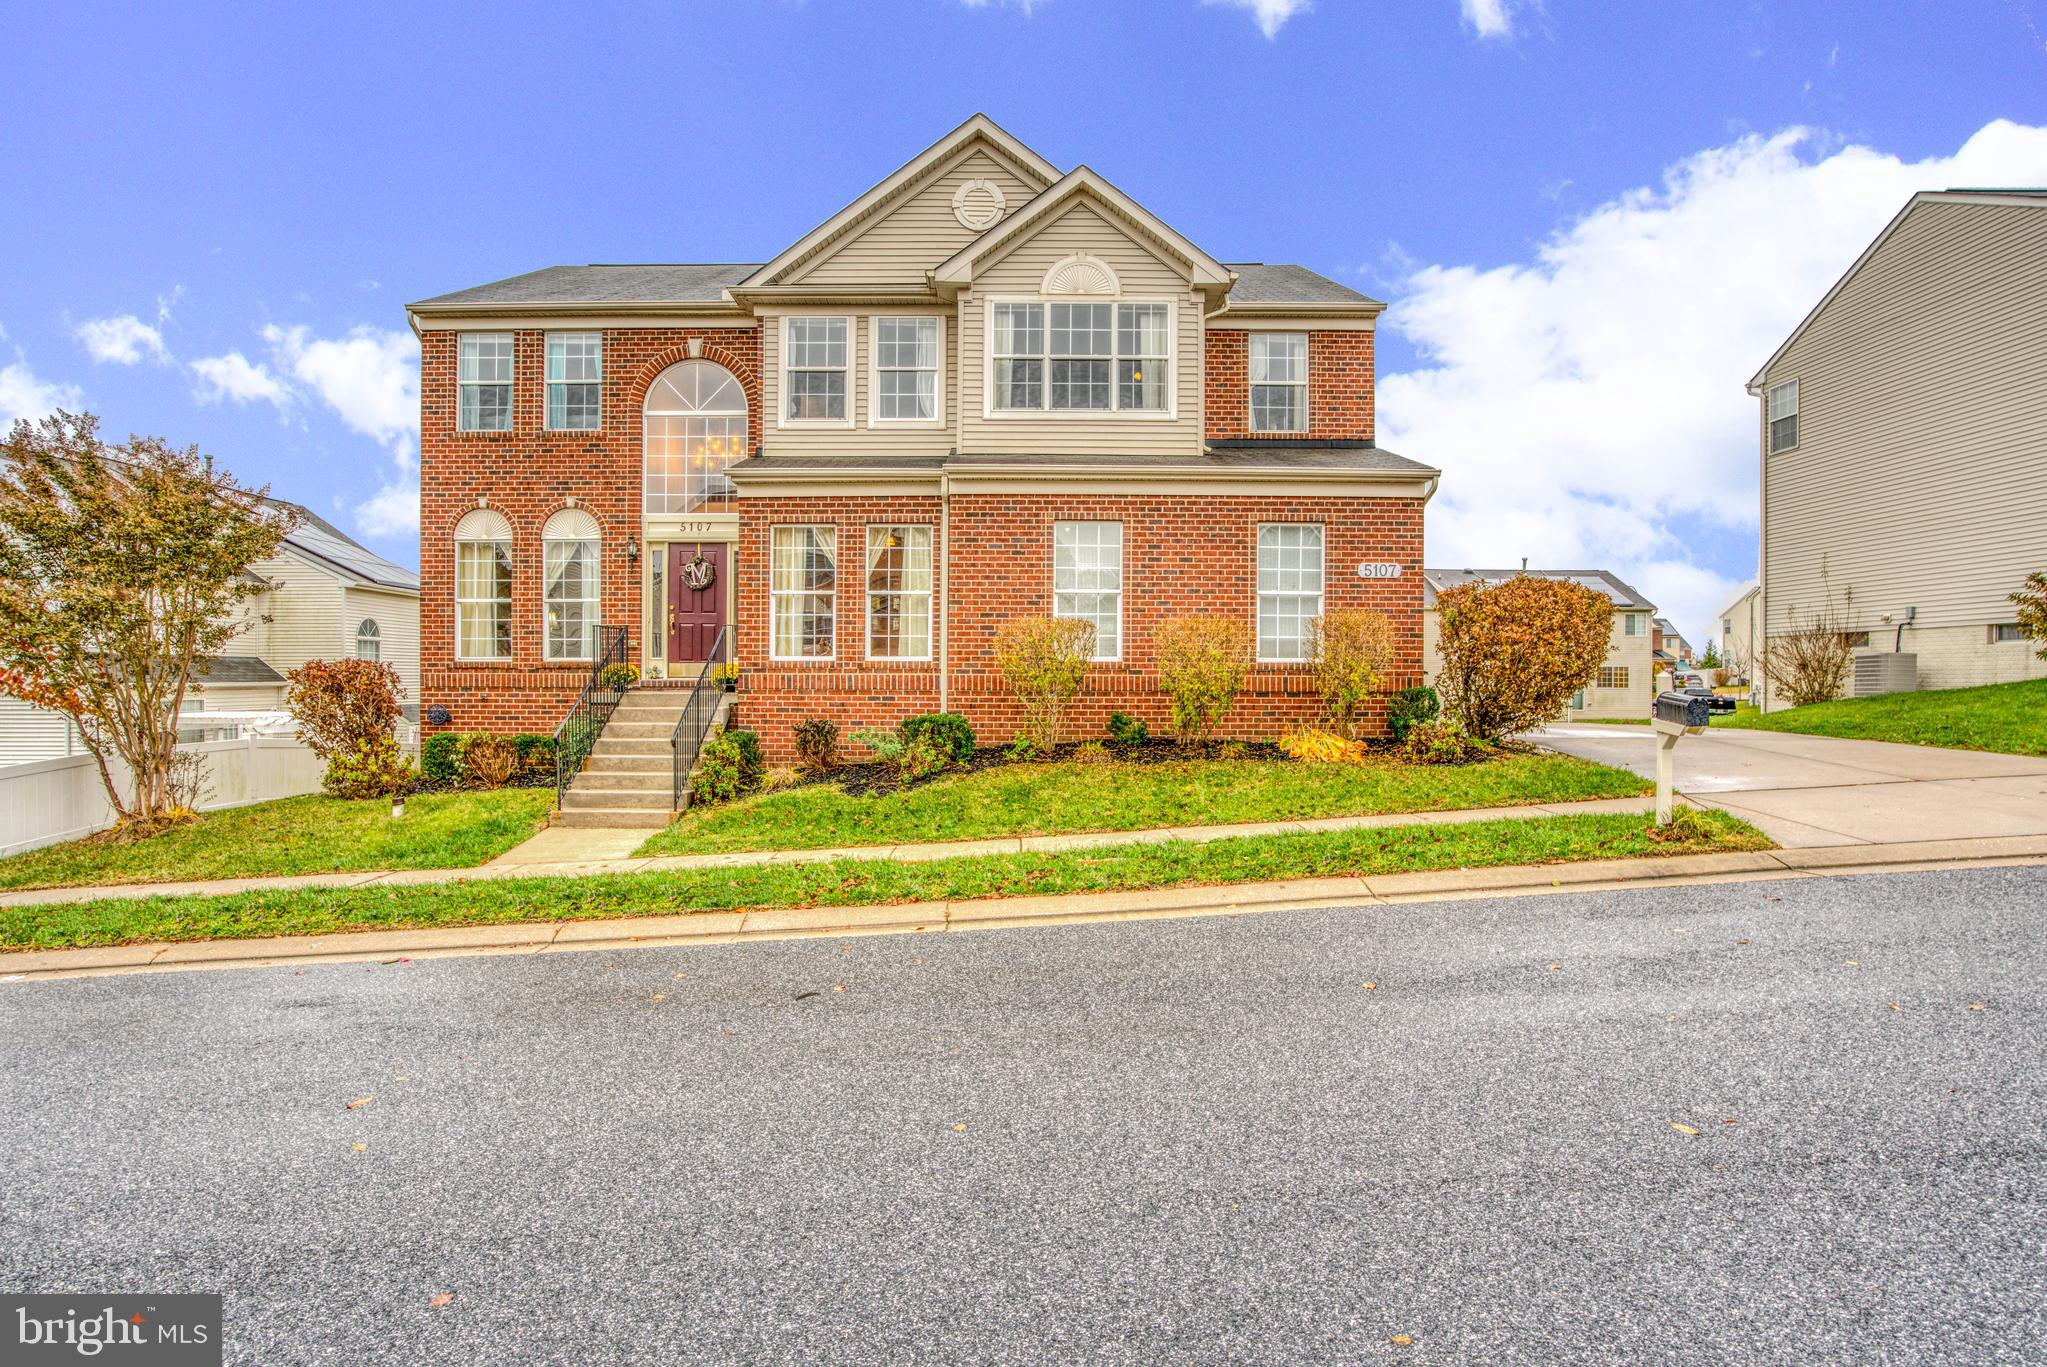 Beautifully maintained brick front 5 bedroom home in Forge Landing on A cul de sac.  Beautiful backy